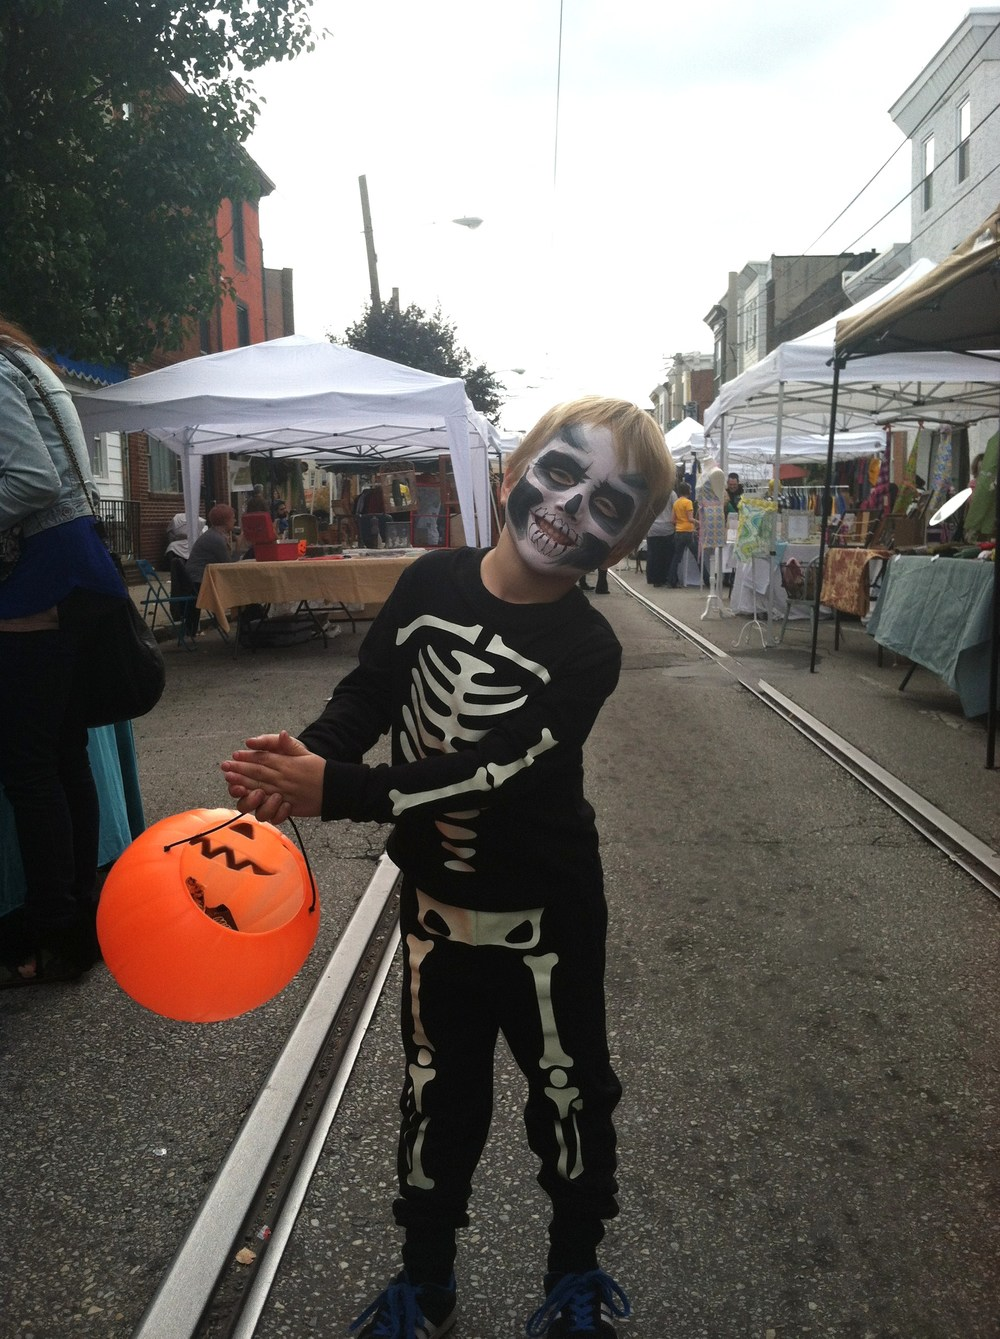 Volunteers wanted on East Passyunk for trick or treating and fall fun.